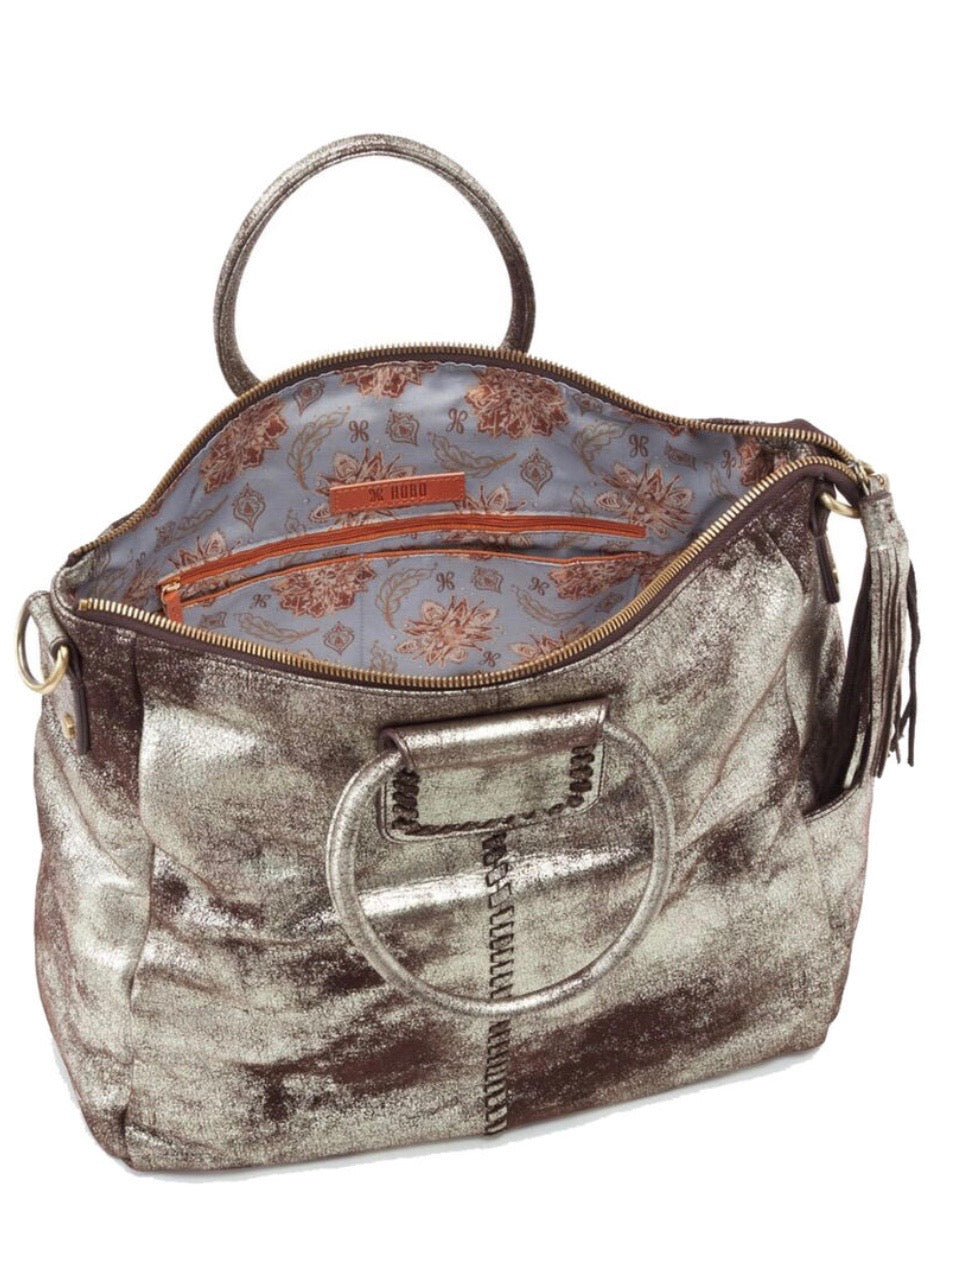 Sheila Travel Bag